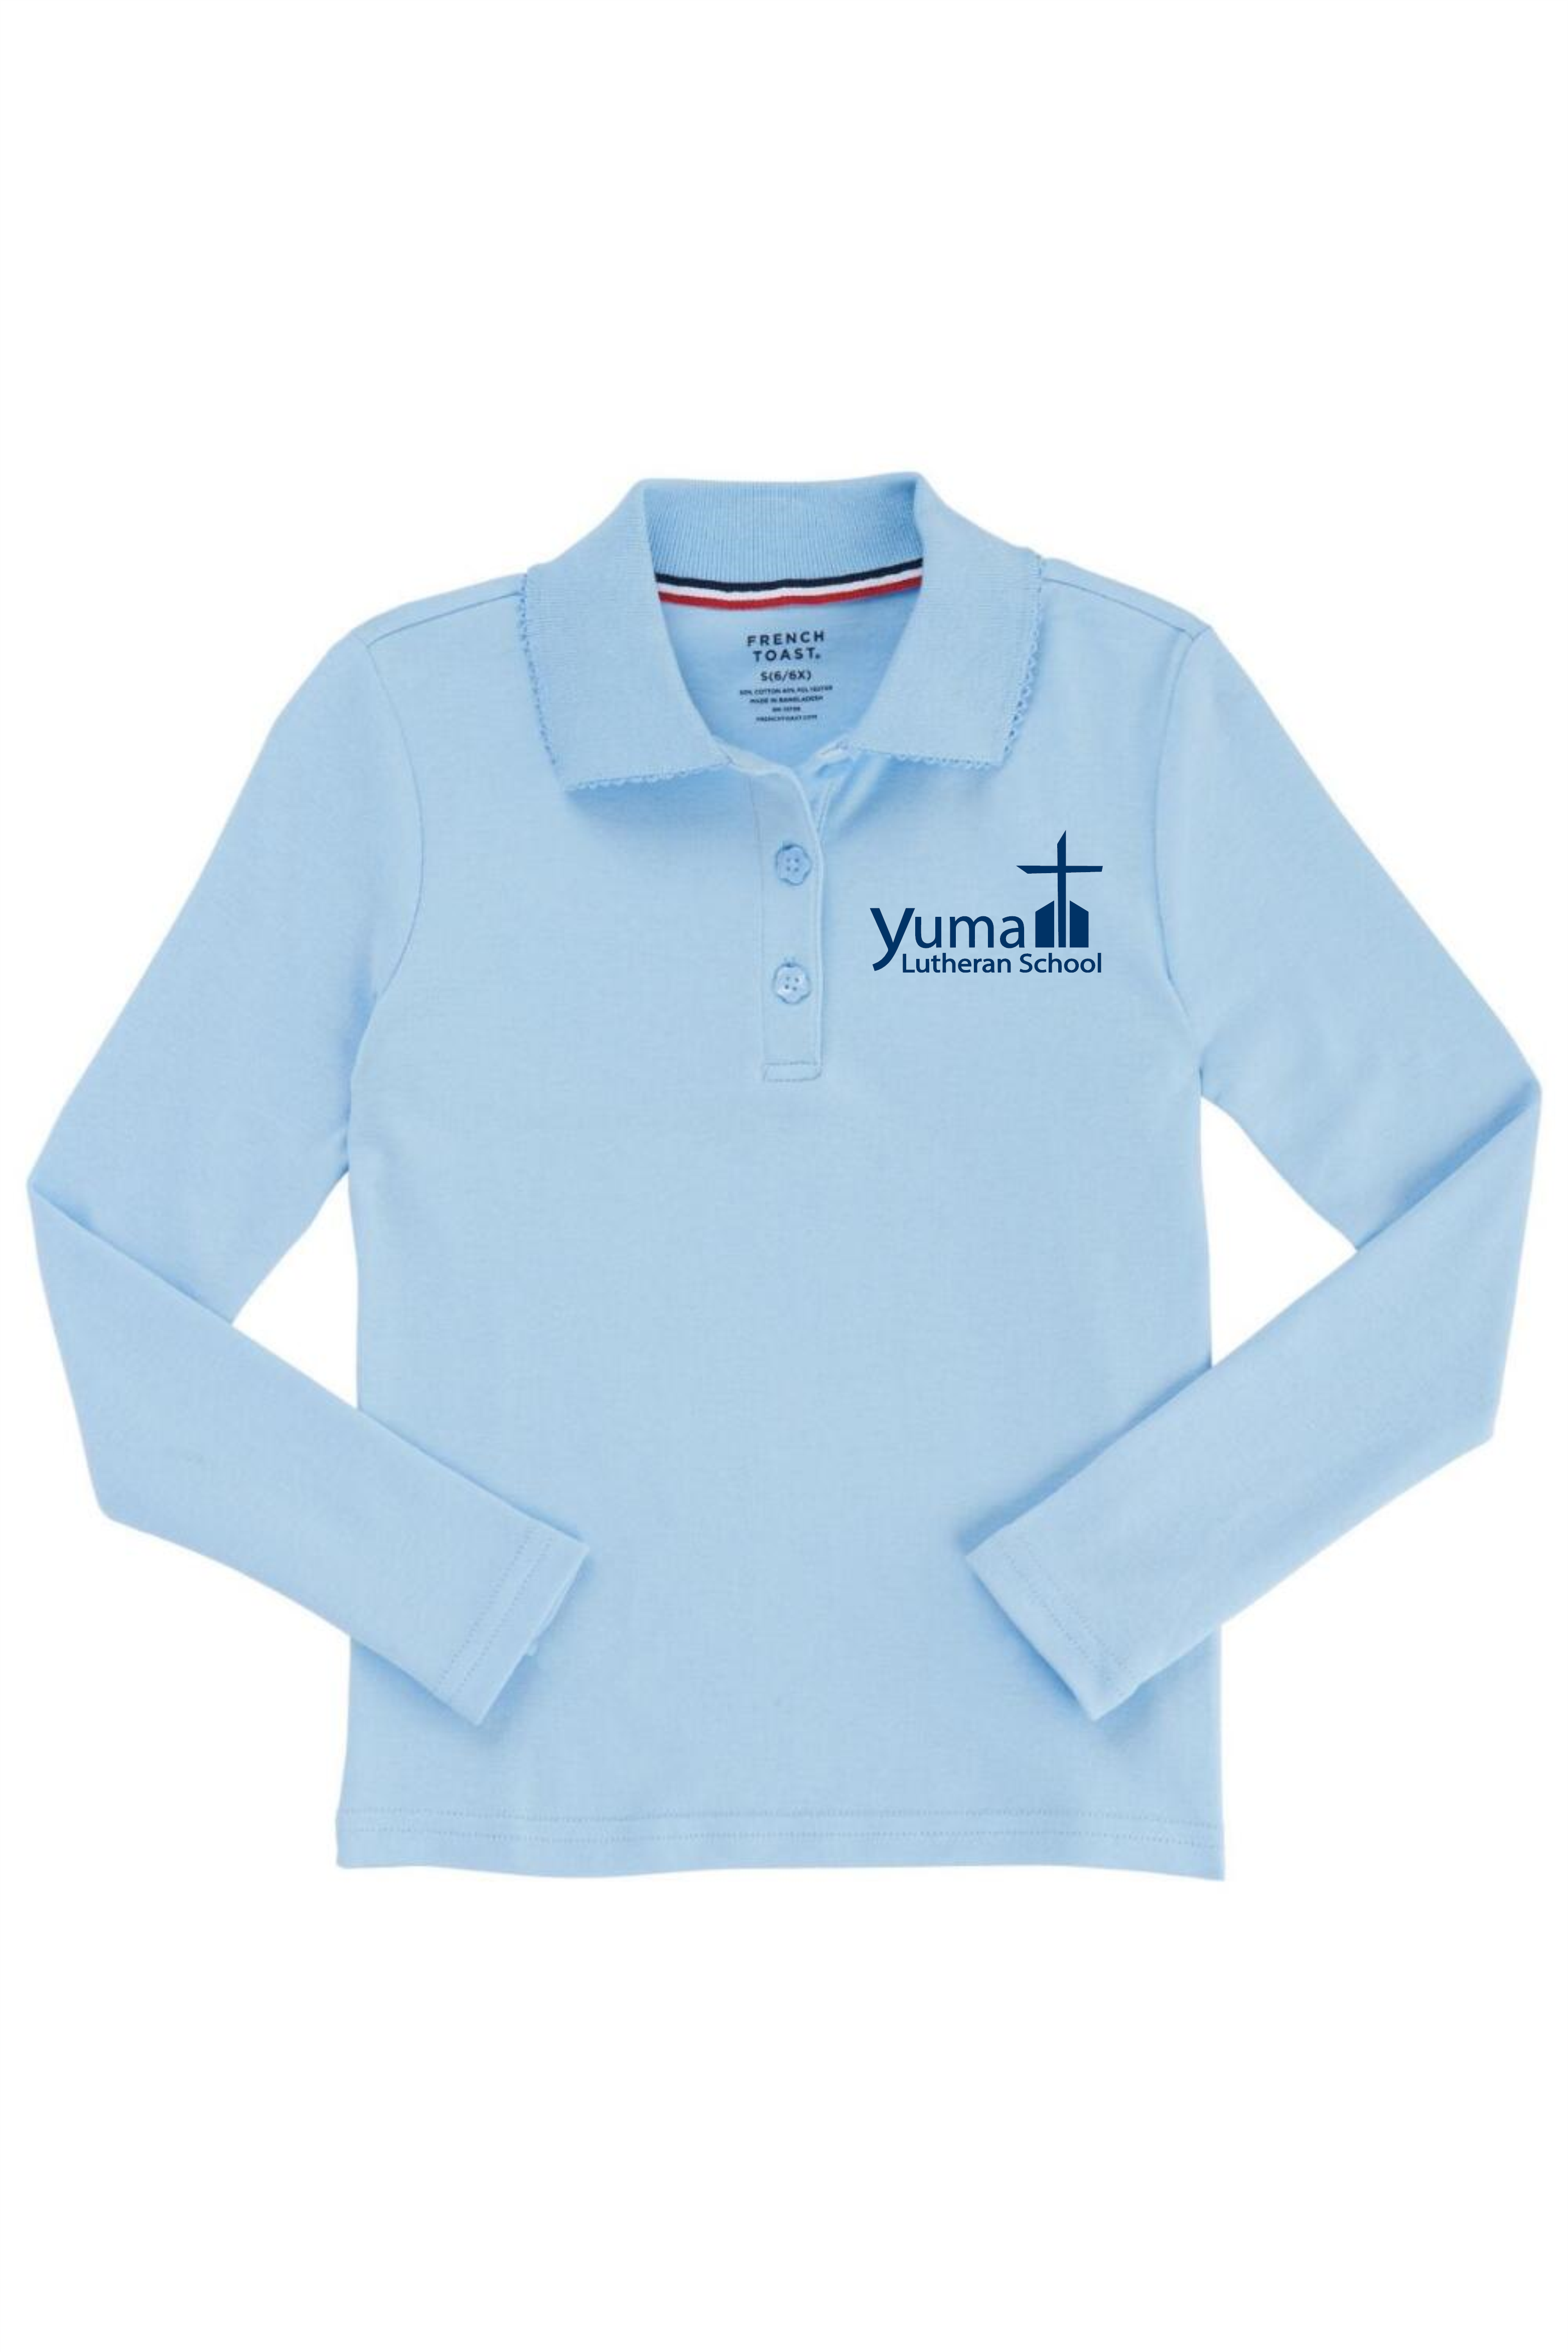 French Toast Girl's Long Sleeve Interlock Knit Polo with Picot Collar (Feminine Fit) (Polo Size: 4T, French Toast Polo Color: Lt Blue - YLS)